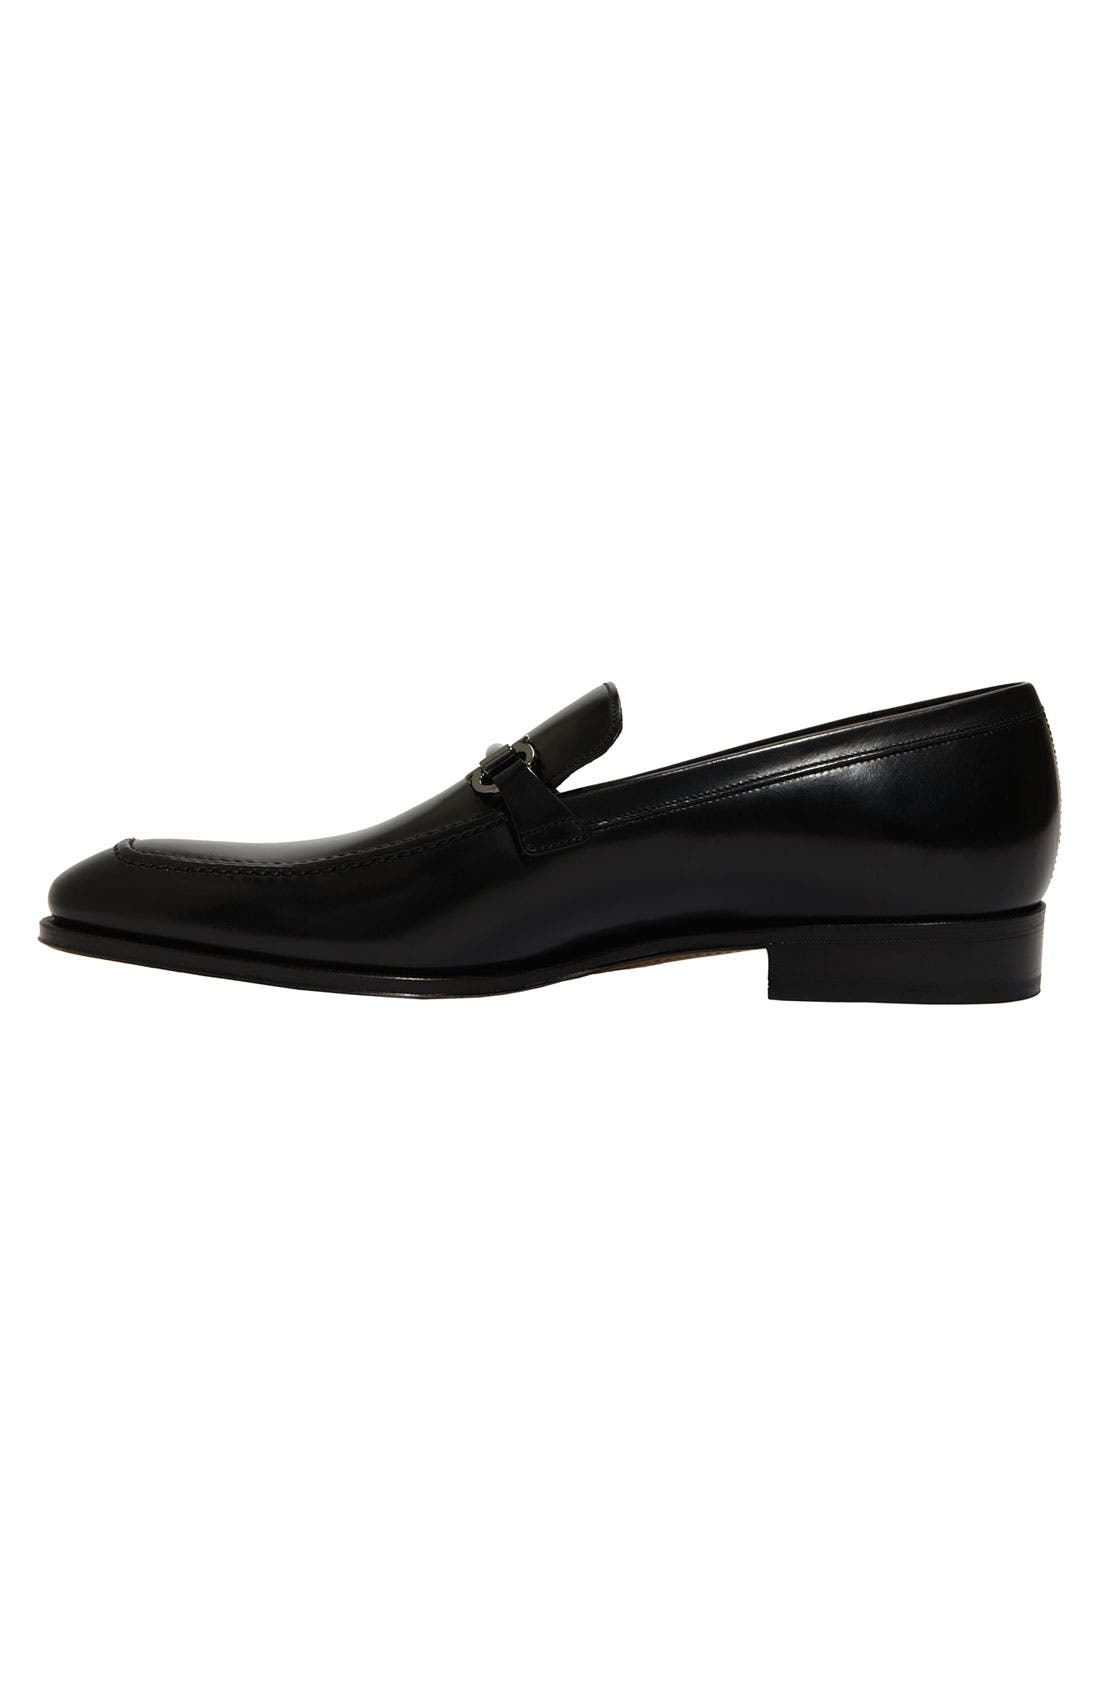 Alternate Image 2  - Salvatore Ferragamo 'Fenice' Loafer